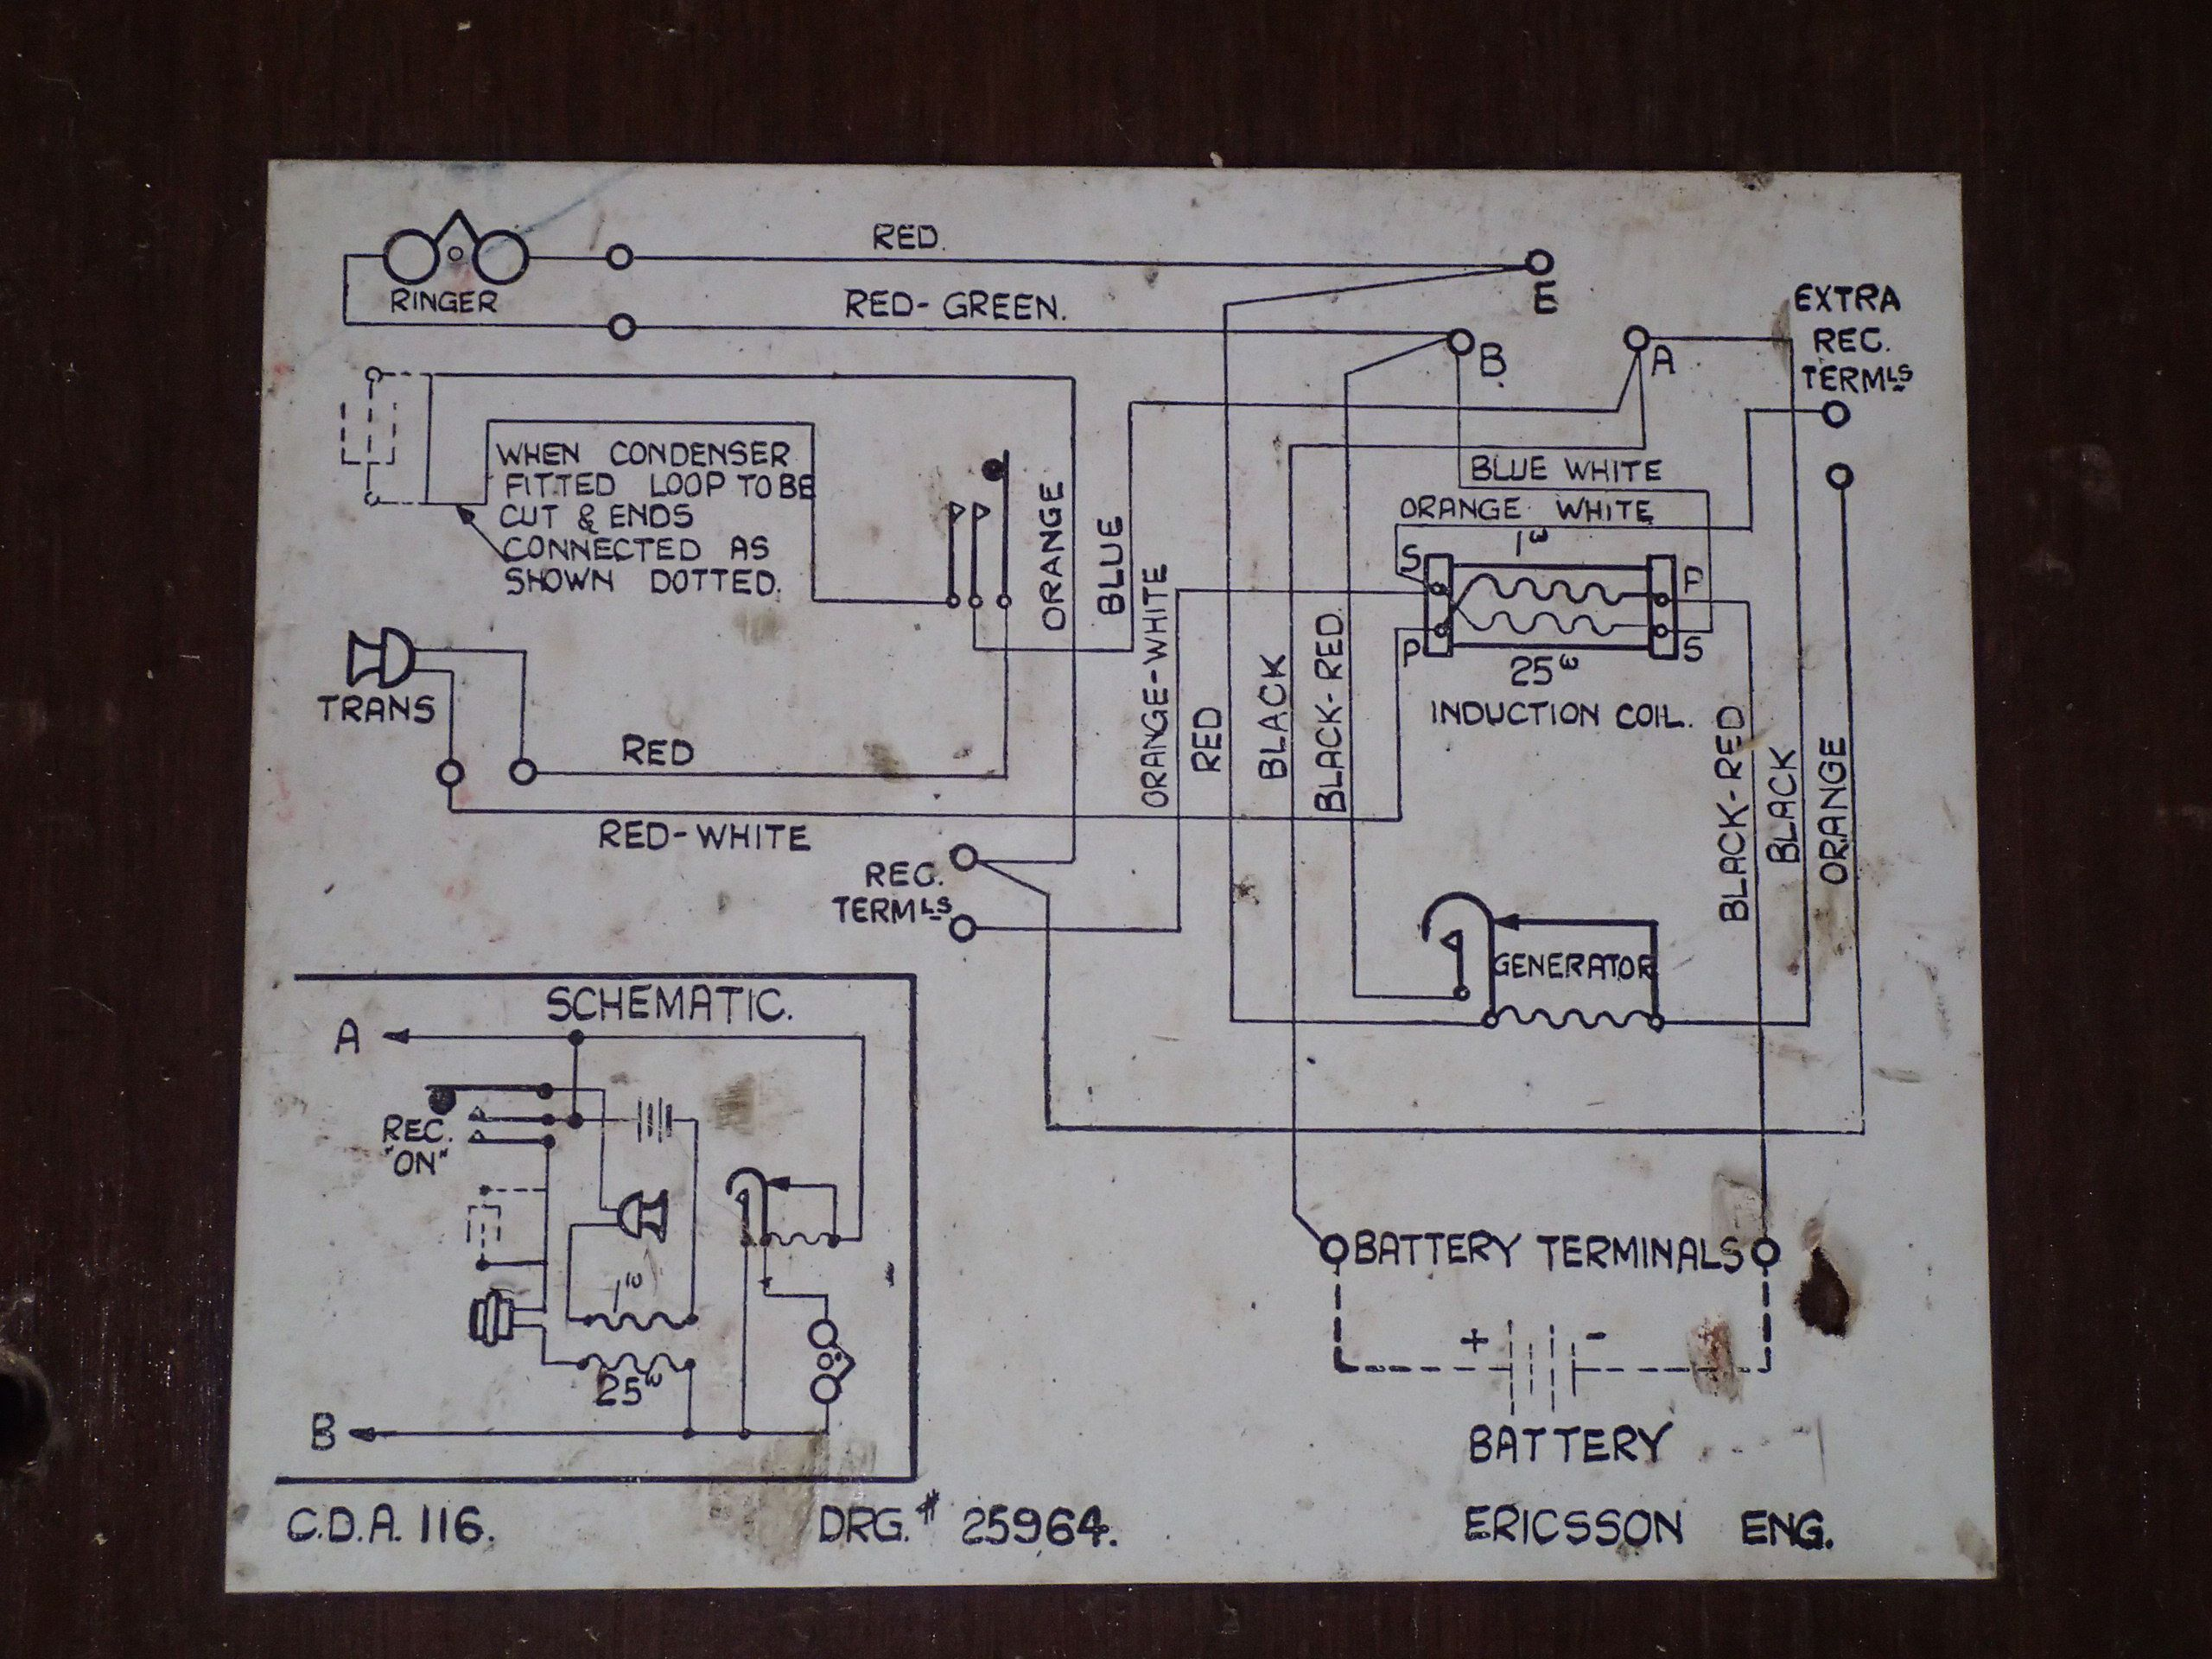 6f95880f4fd59b54fce2a8ee616cb286 phone number 2 wiring diagram magneto wall telephones pinterest crank telephone wiring diagrams at soozxer.org